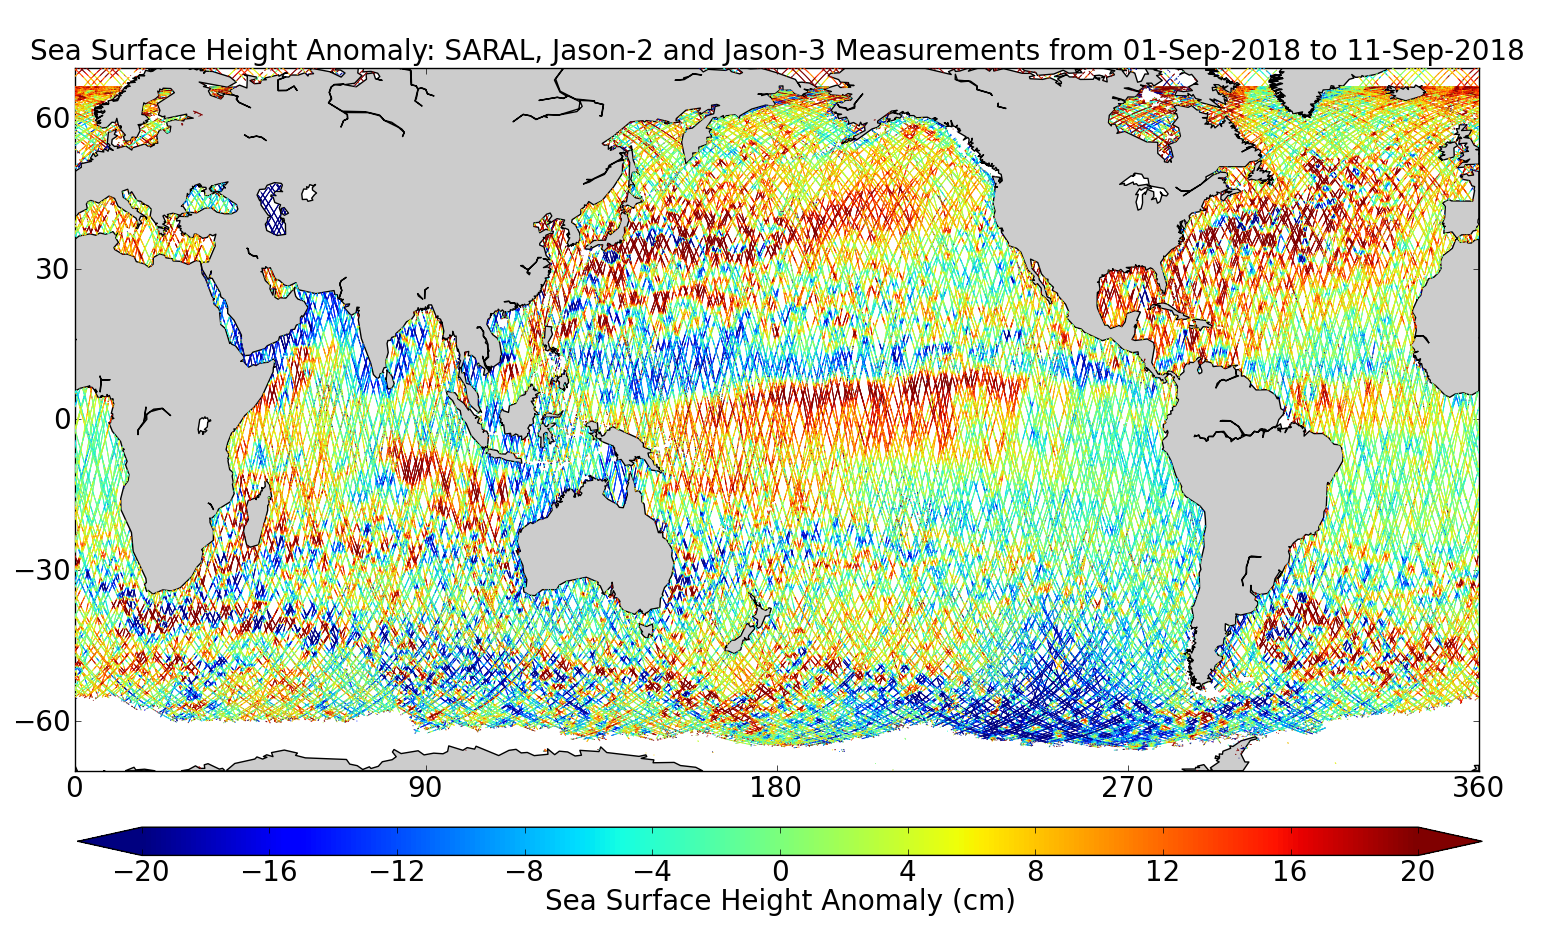 Sea Surface Height Anomaly: SARAL, Jason-2 and Jason-3 Measurements from 01-Sep-2018 to 11-Sep-2018